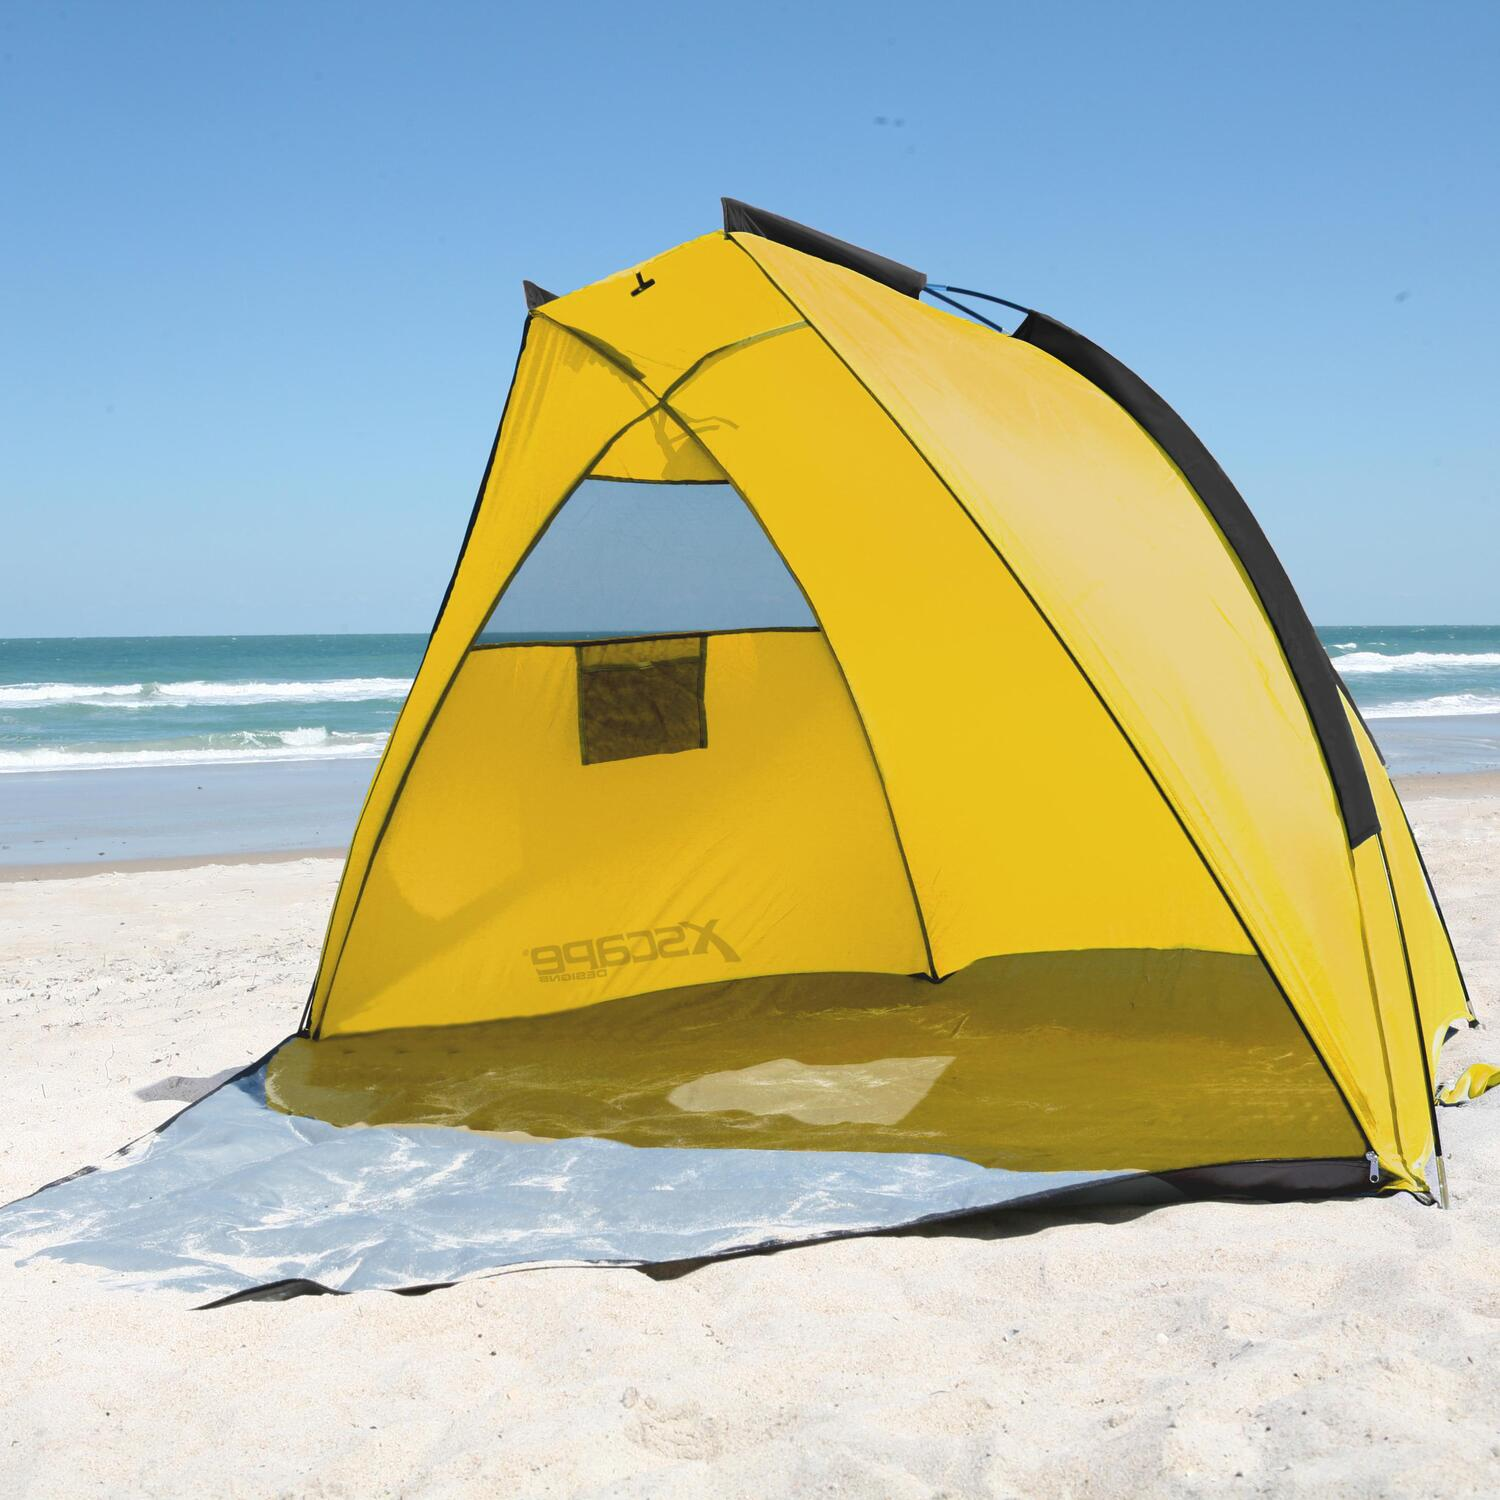 Xscape Dome Tent Amp Wakeman 4 Person Tent Water Resistant